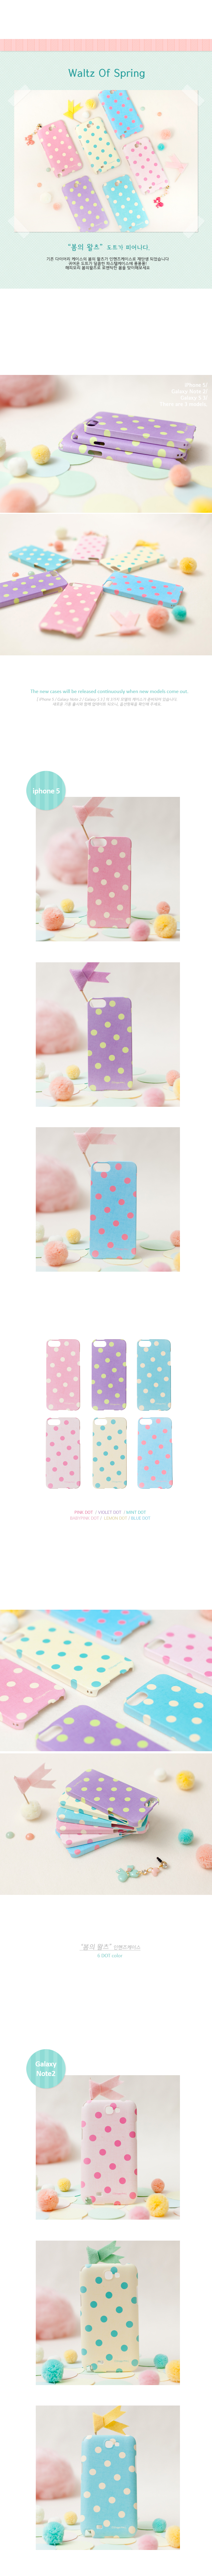 [HAPPYMORI] Hard Case_Waltz of spring DotDot 6 Color (iPhone5/5s,iPhone6,Galaxy S3,Galaxy S4,Galaxy S6,Galaxy S6 Edge)